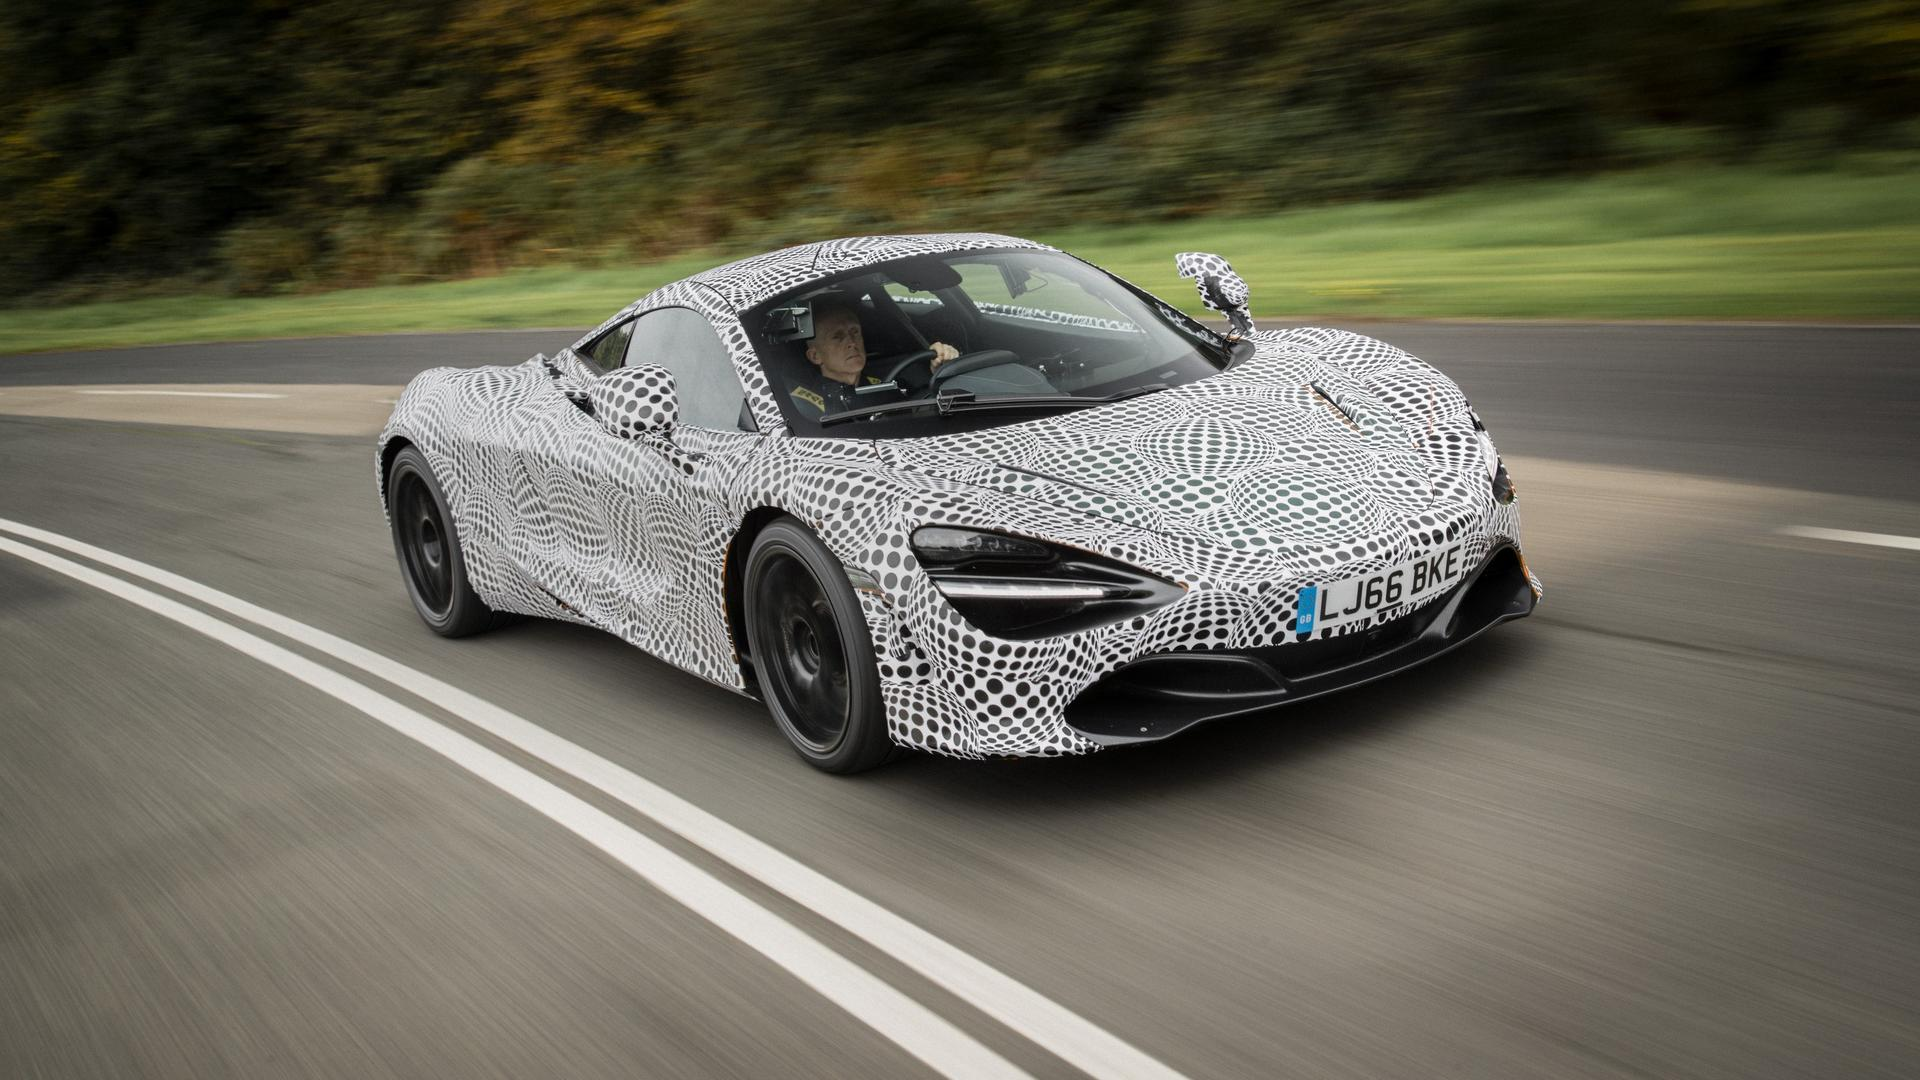 McLaren testing an EV, but challenges remain to electrify a hypercar